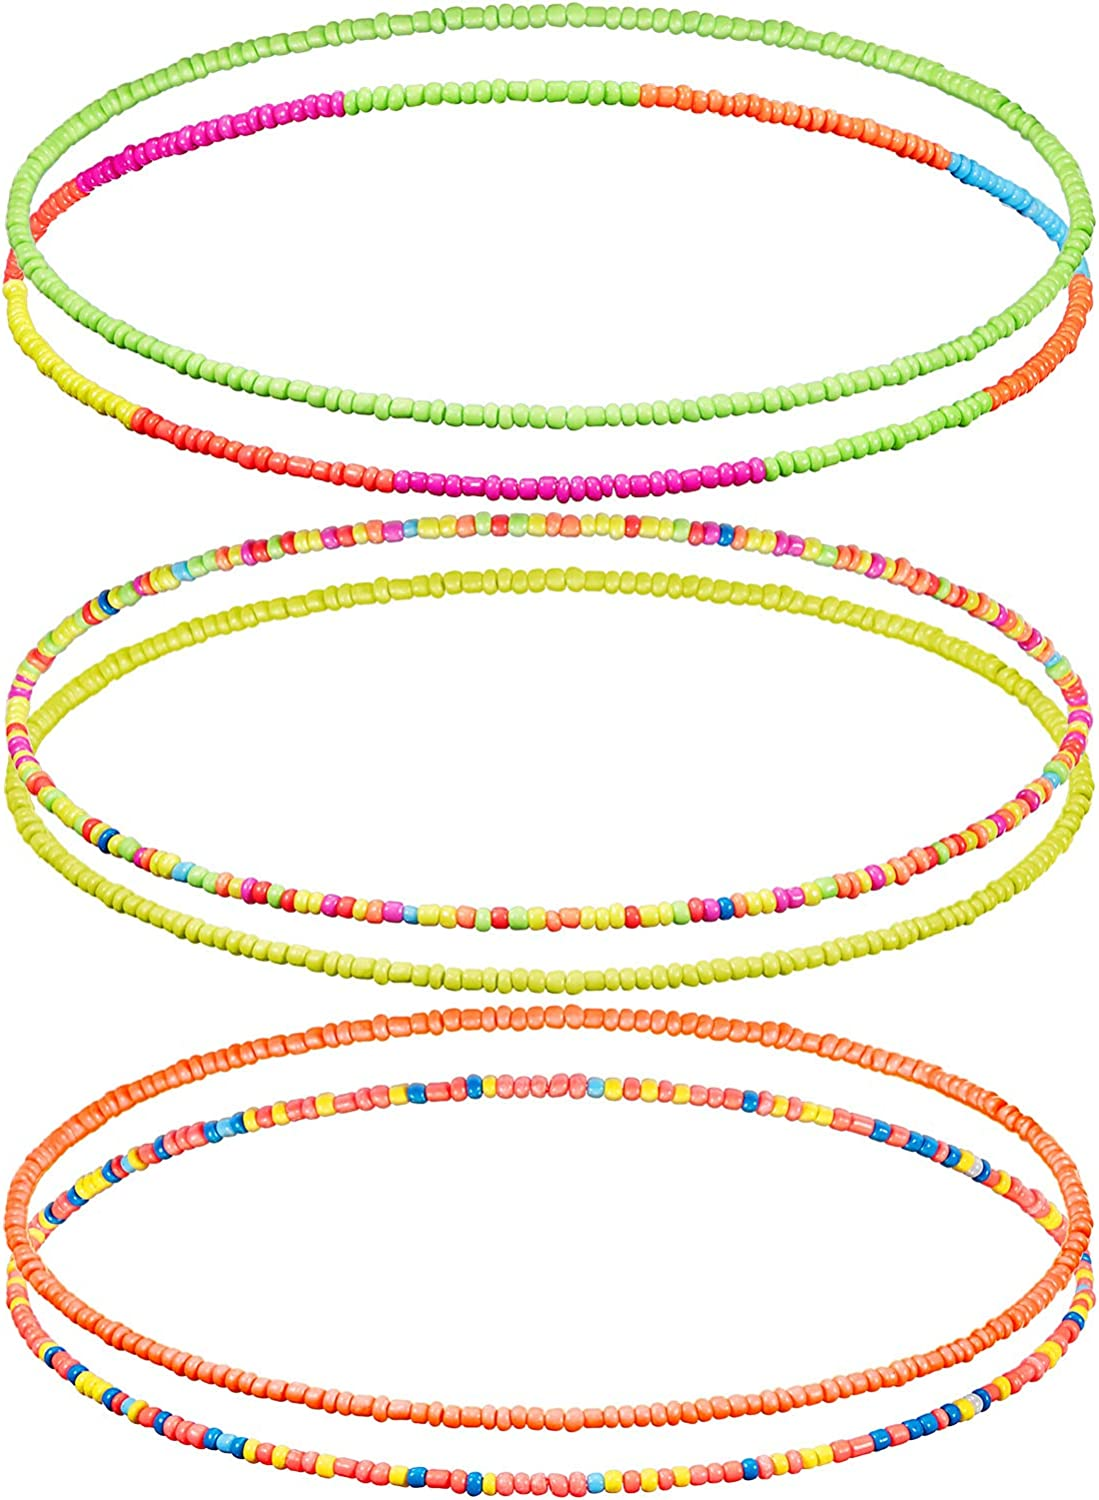 Hicarer Neon Elastic Waist Beads 6 Pieces Belly Beads Colorful Body Chain African Waist Belly Chain Bikini Necklace Bracelet Anklet Jewelry for Women Girls, 6 Styles